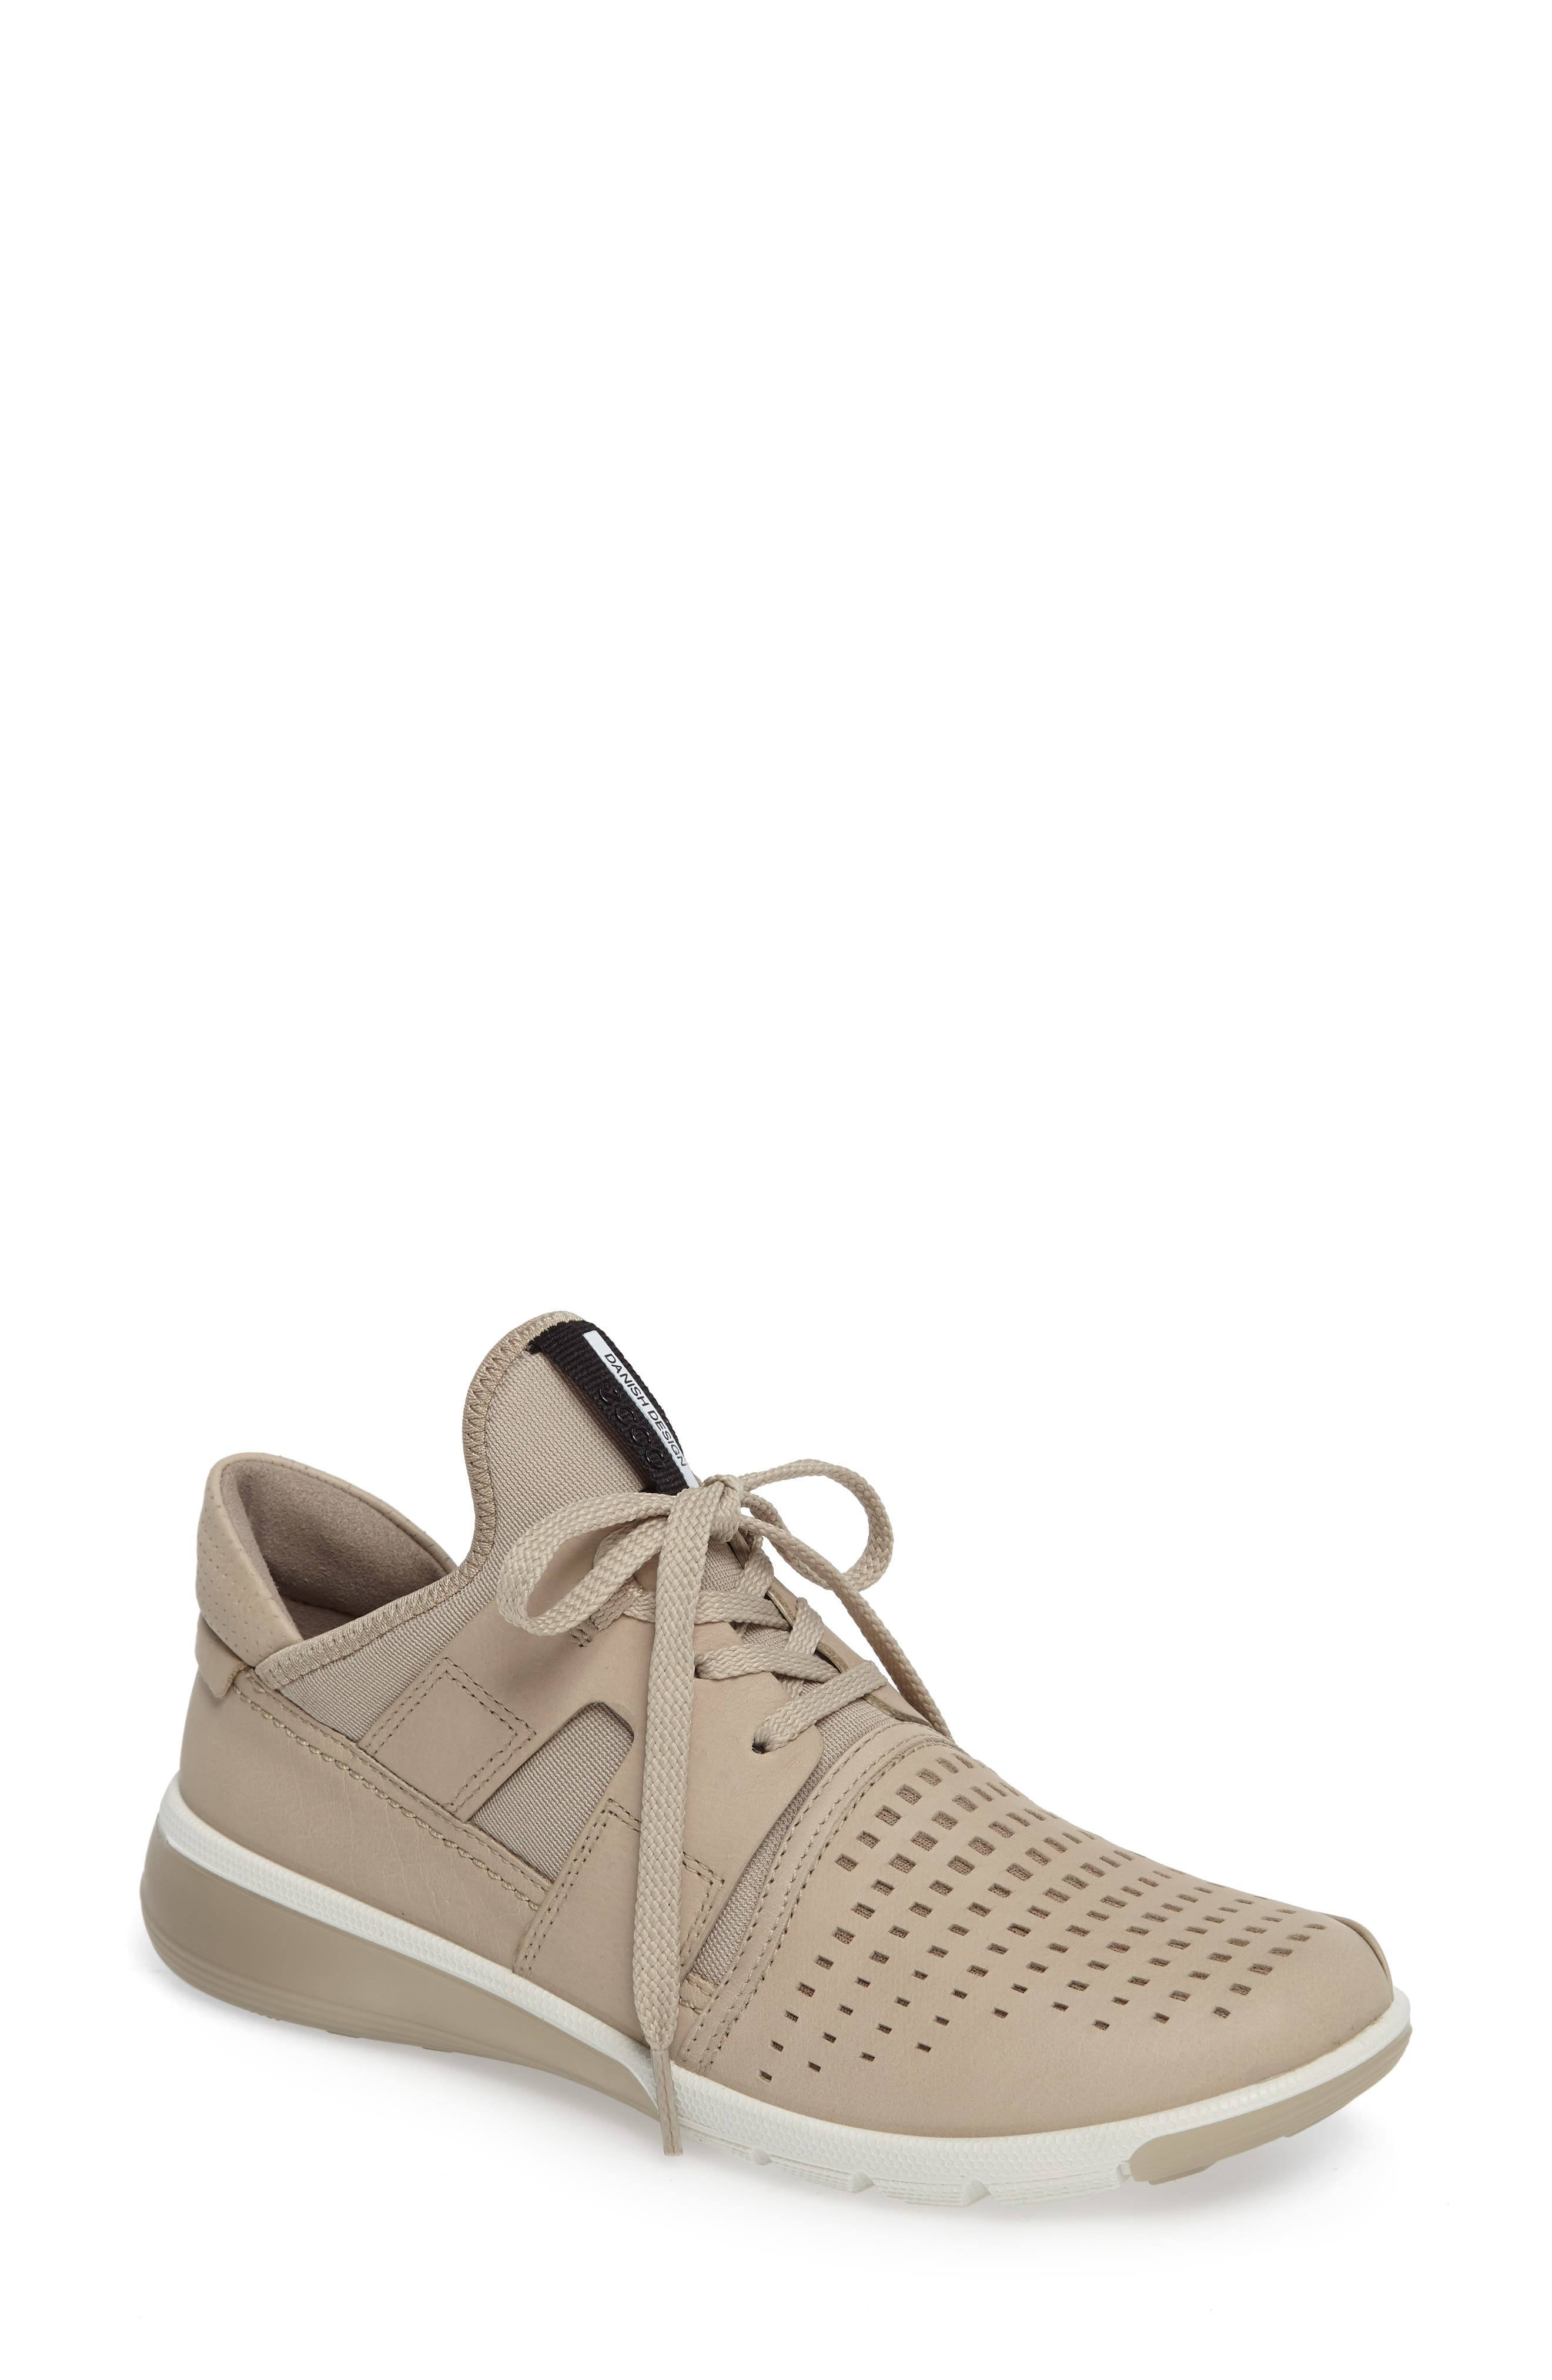 Intrinsic 2 Sneaker,                         Main,                         color, Oyster Leather